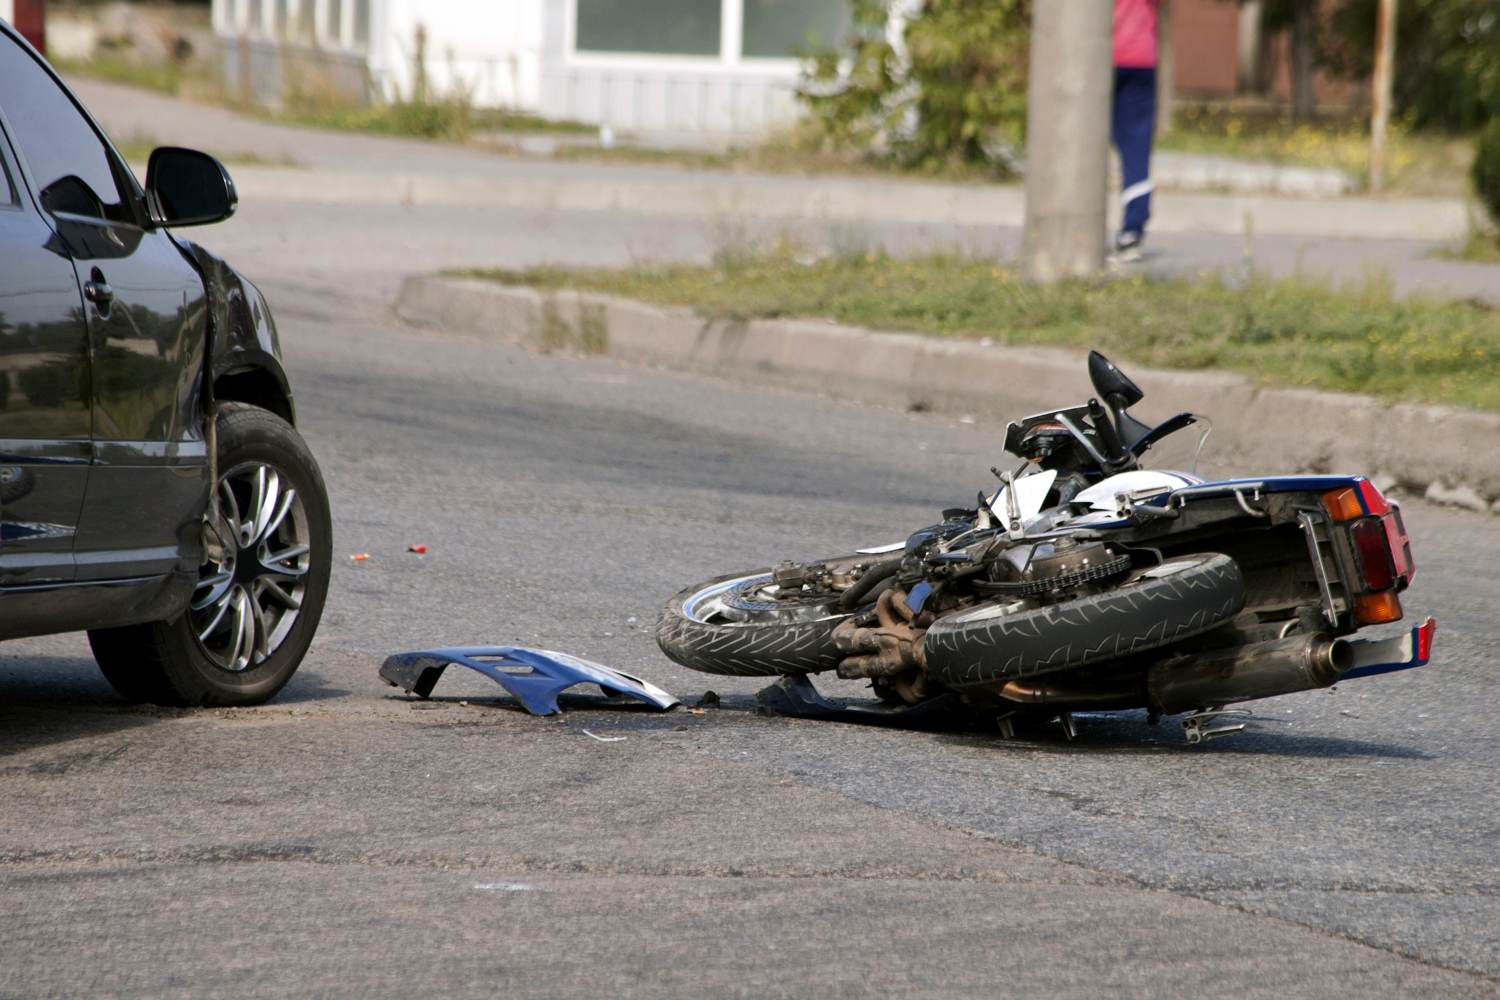 Motorcycle crash with black car